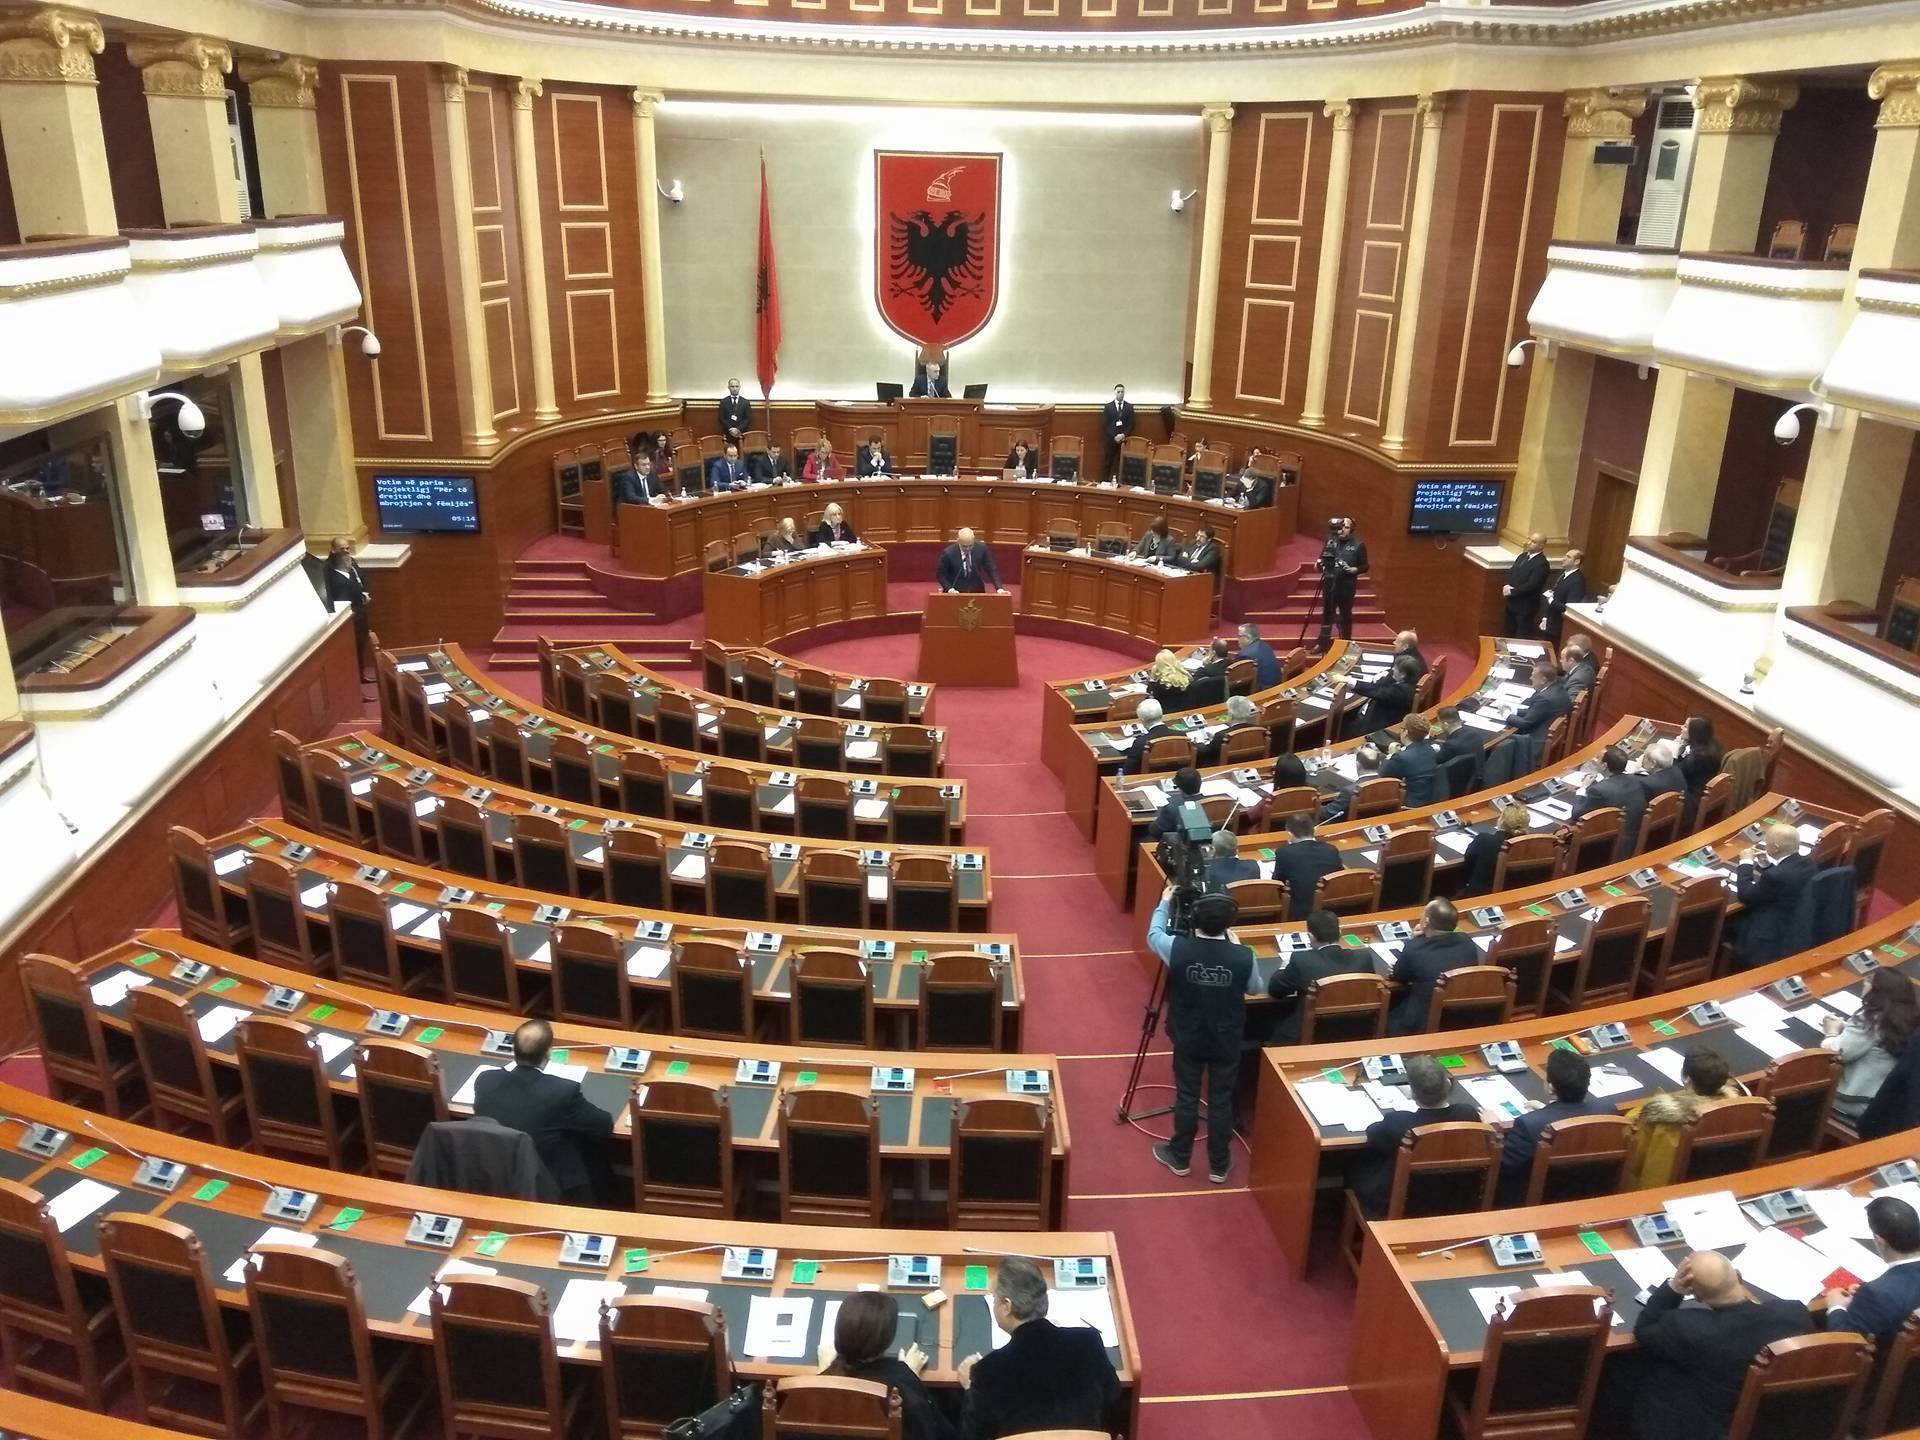 Parliament votes several bills, but the bill on magistrates fails once again